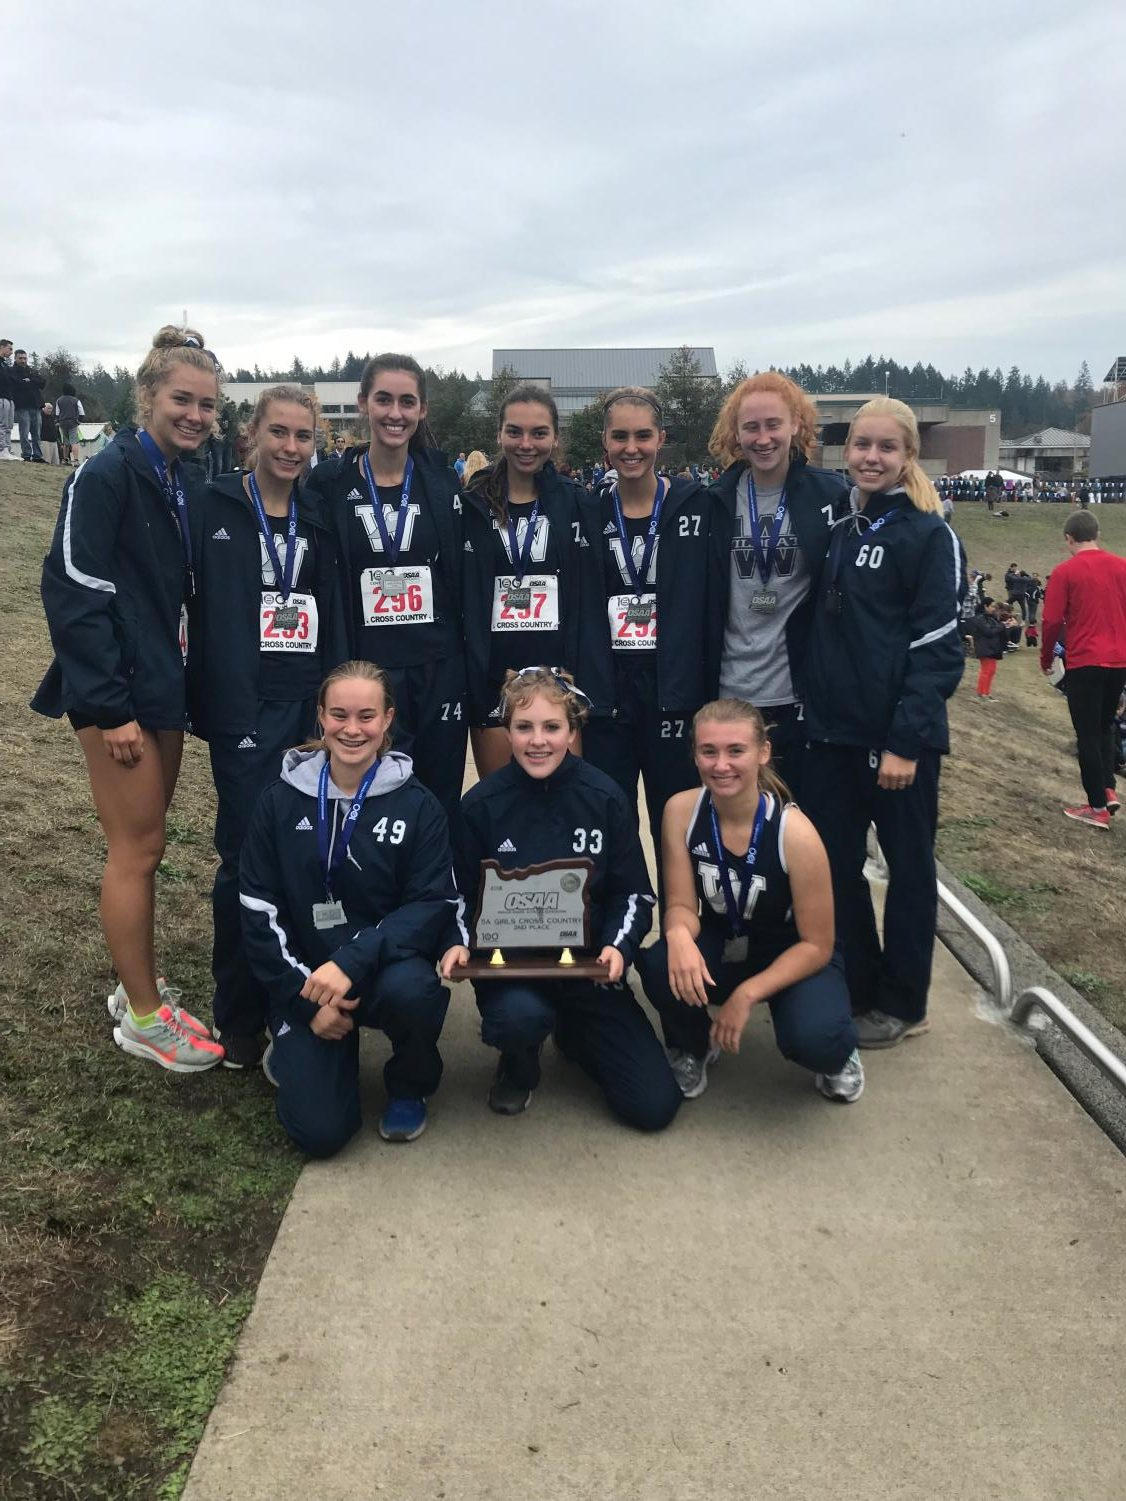 Wilsonville Cross Country girls pose with their second place trophy. We are so proud of how all the athletes performed at state!